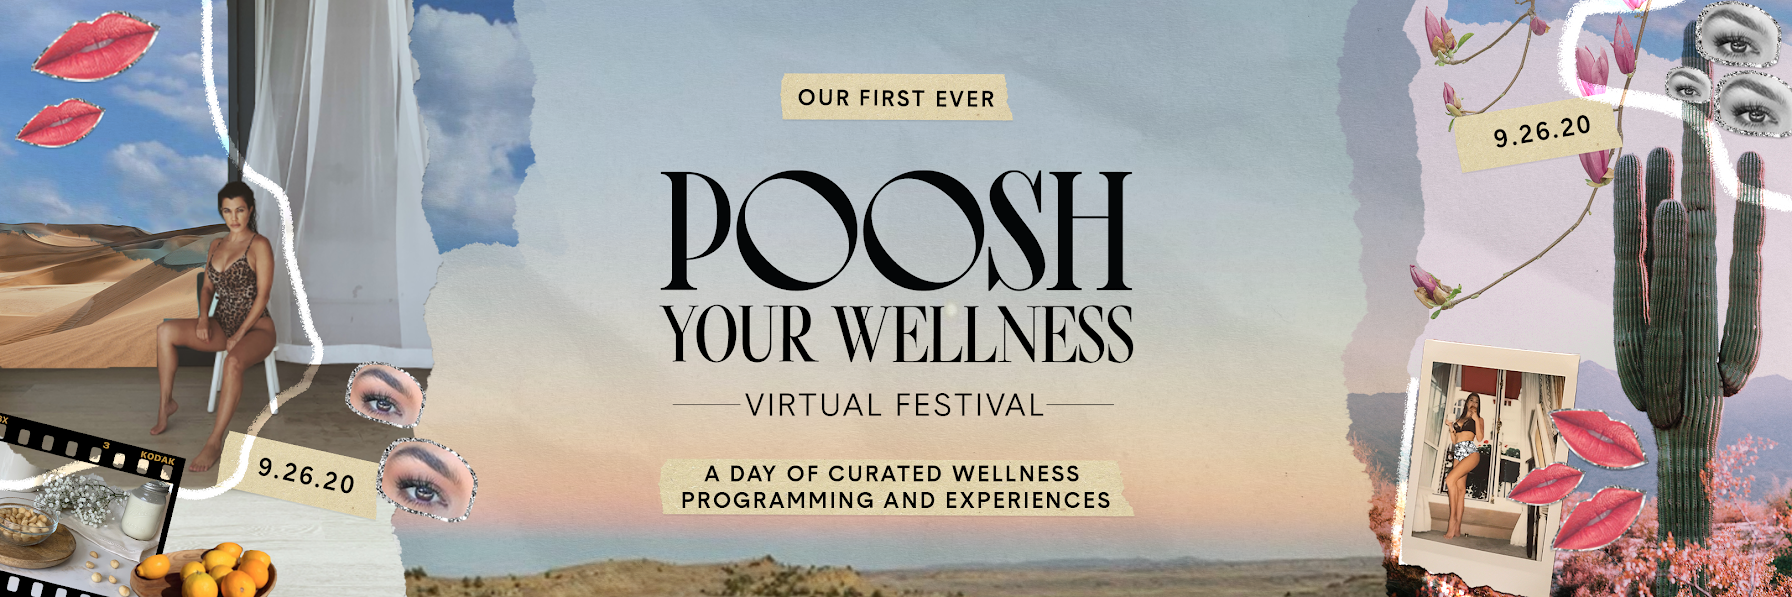 Poosh Your Wellness